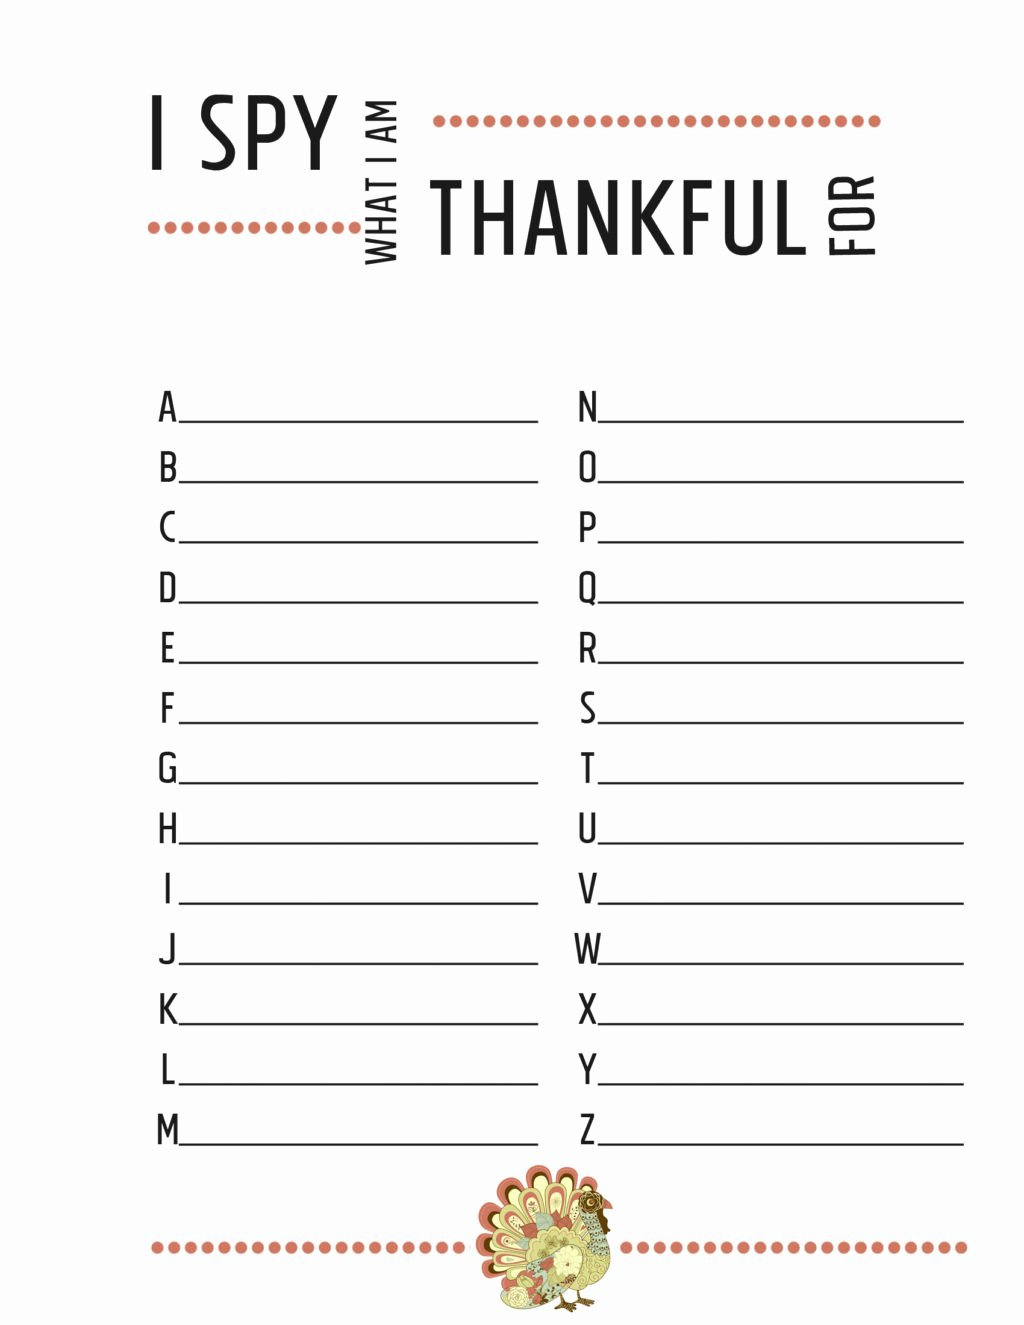 Thanksgiving Worksheets for Preschoolers Lovely Worksheet Free Printable Thanksgiving Worksheets